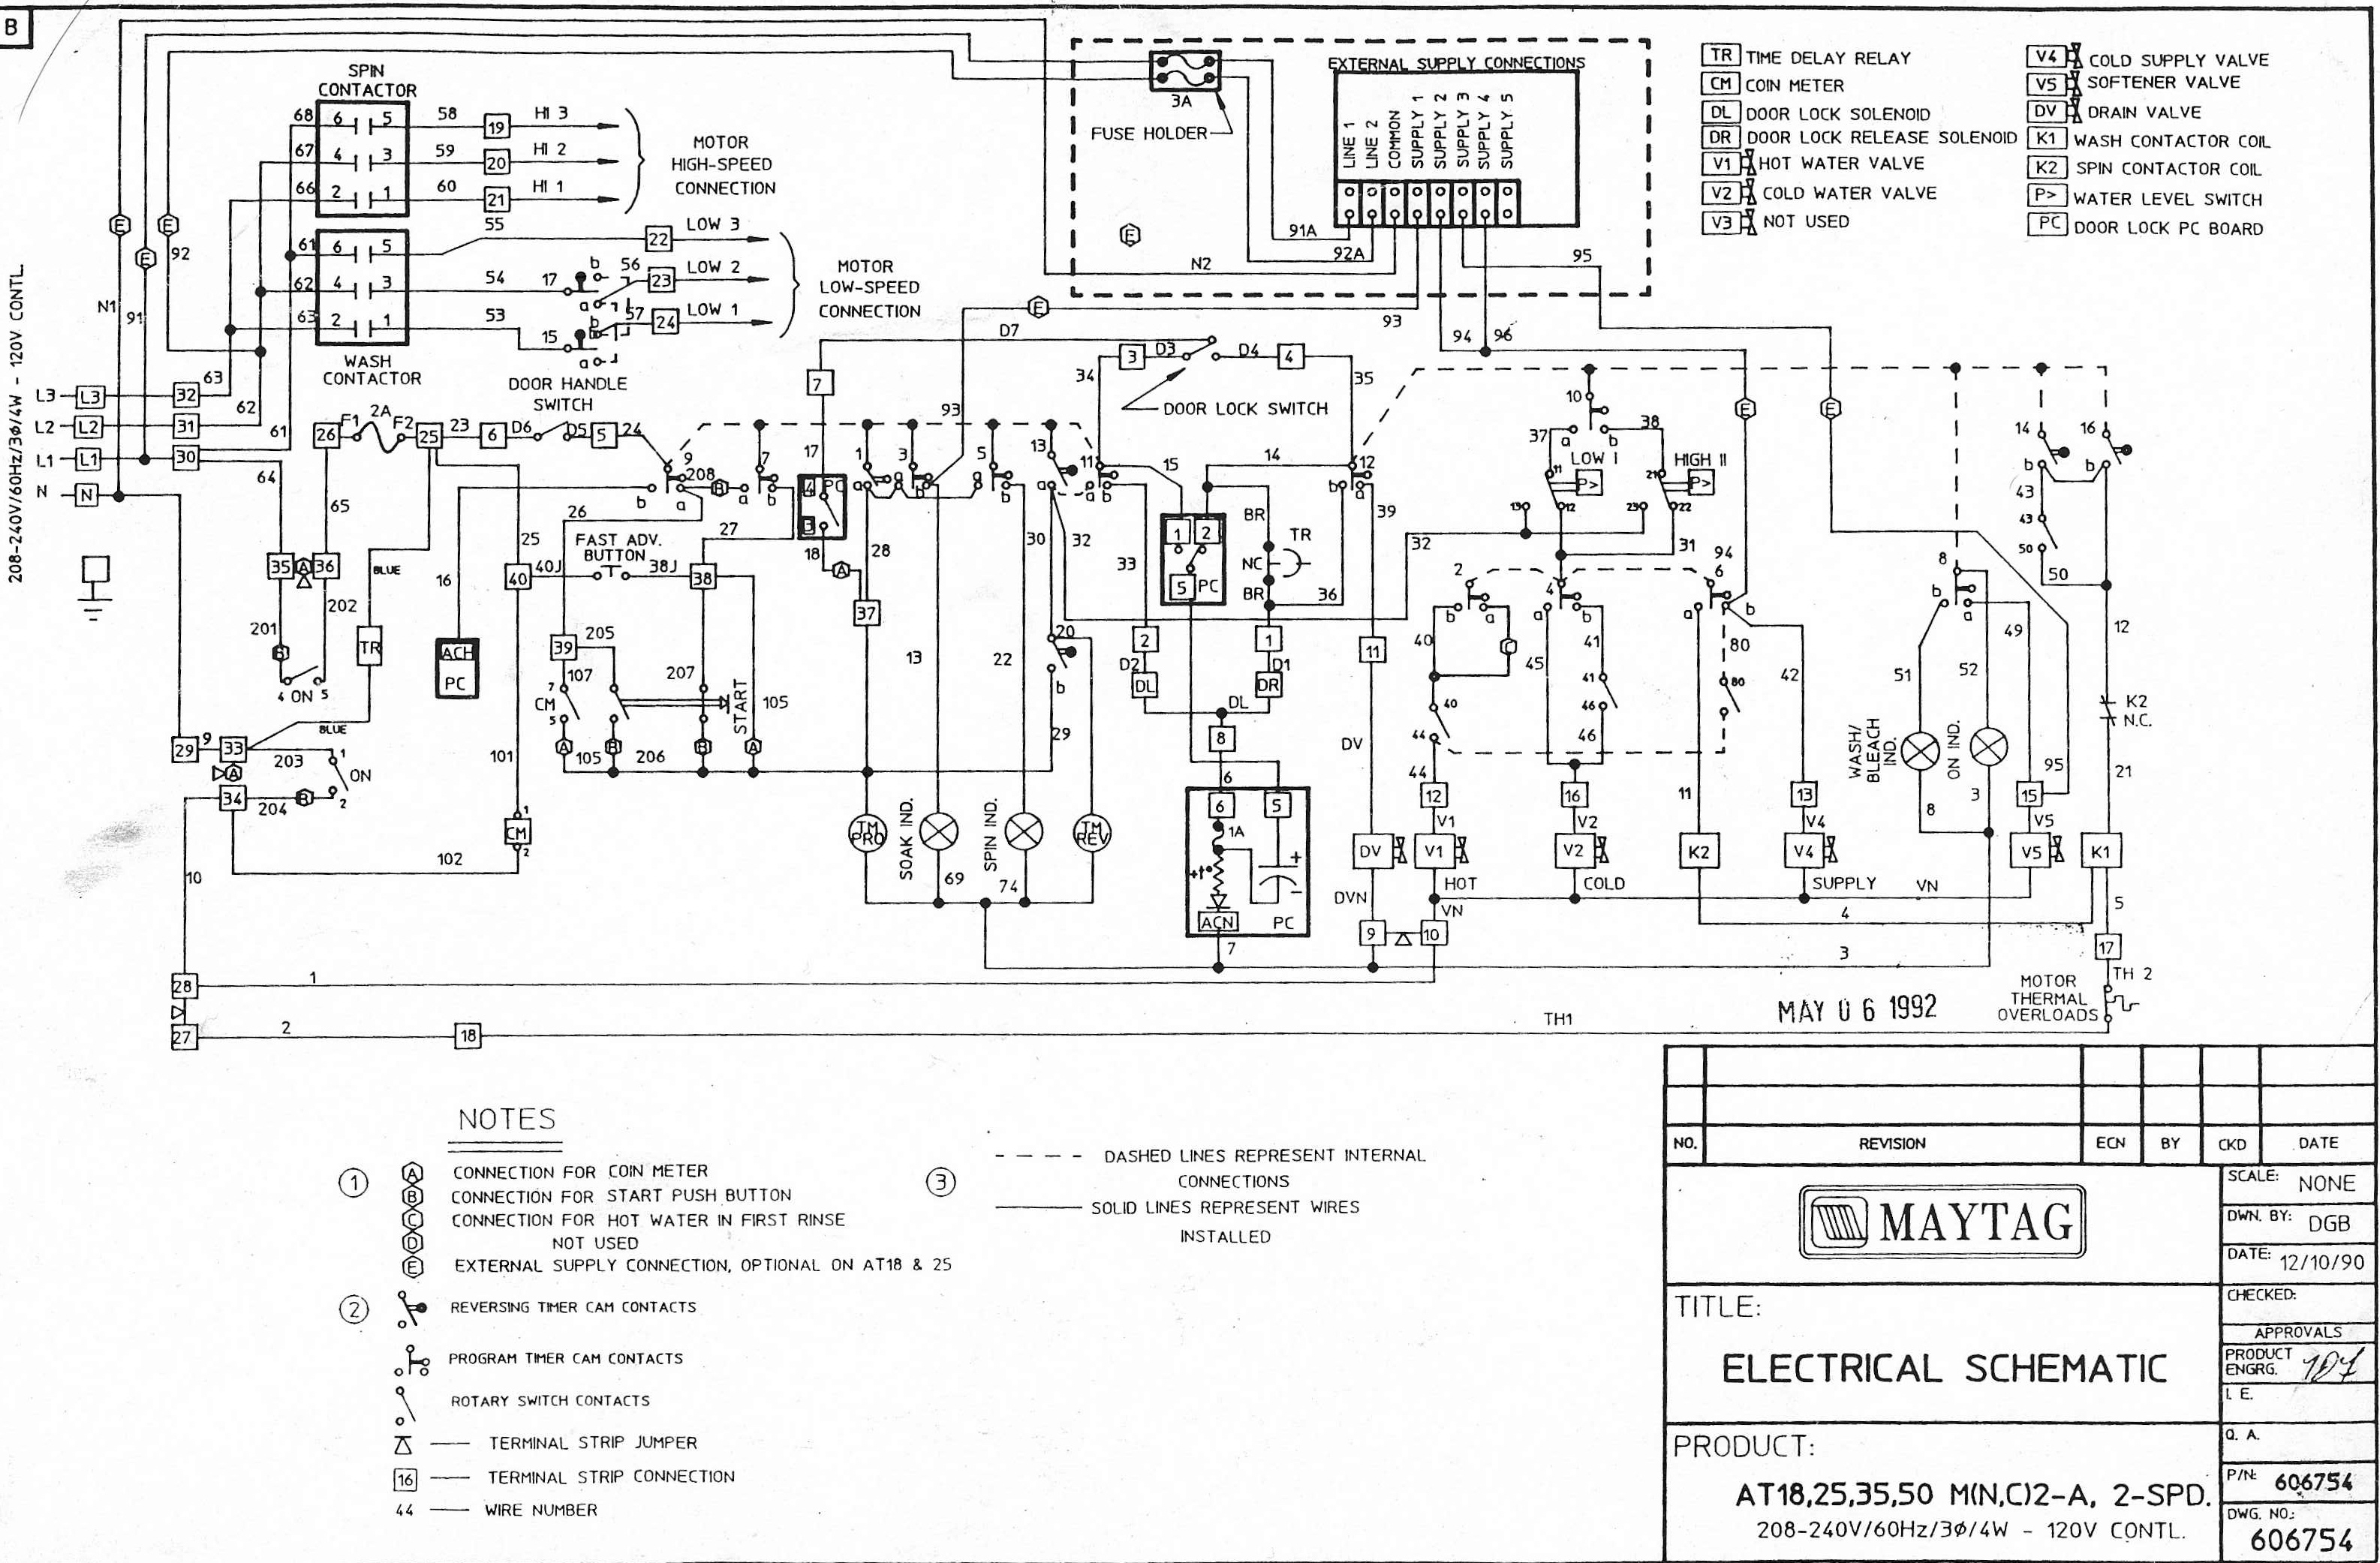 unimac washer wiring diagram online schematic diagram u2022 rh holyoak co  unimac dryer wiring diagram